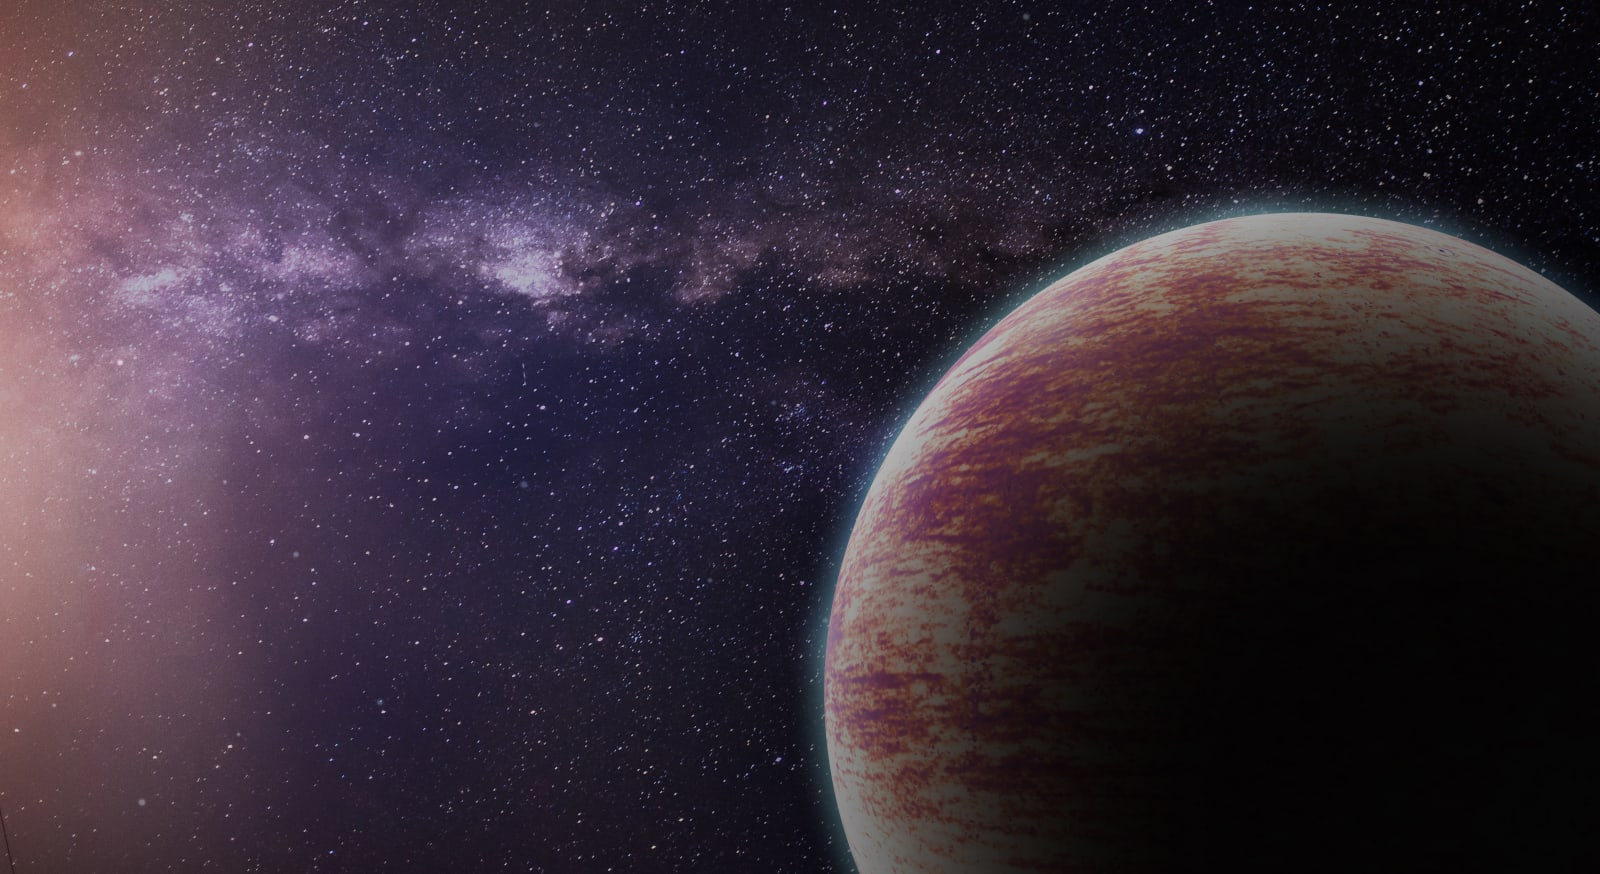 Scientists discover water vapor on an exoplanet with a rocky core